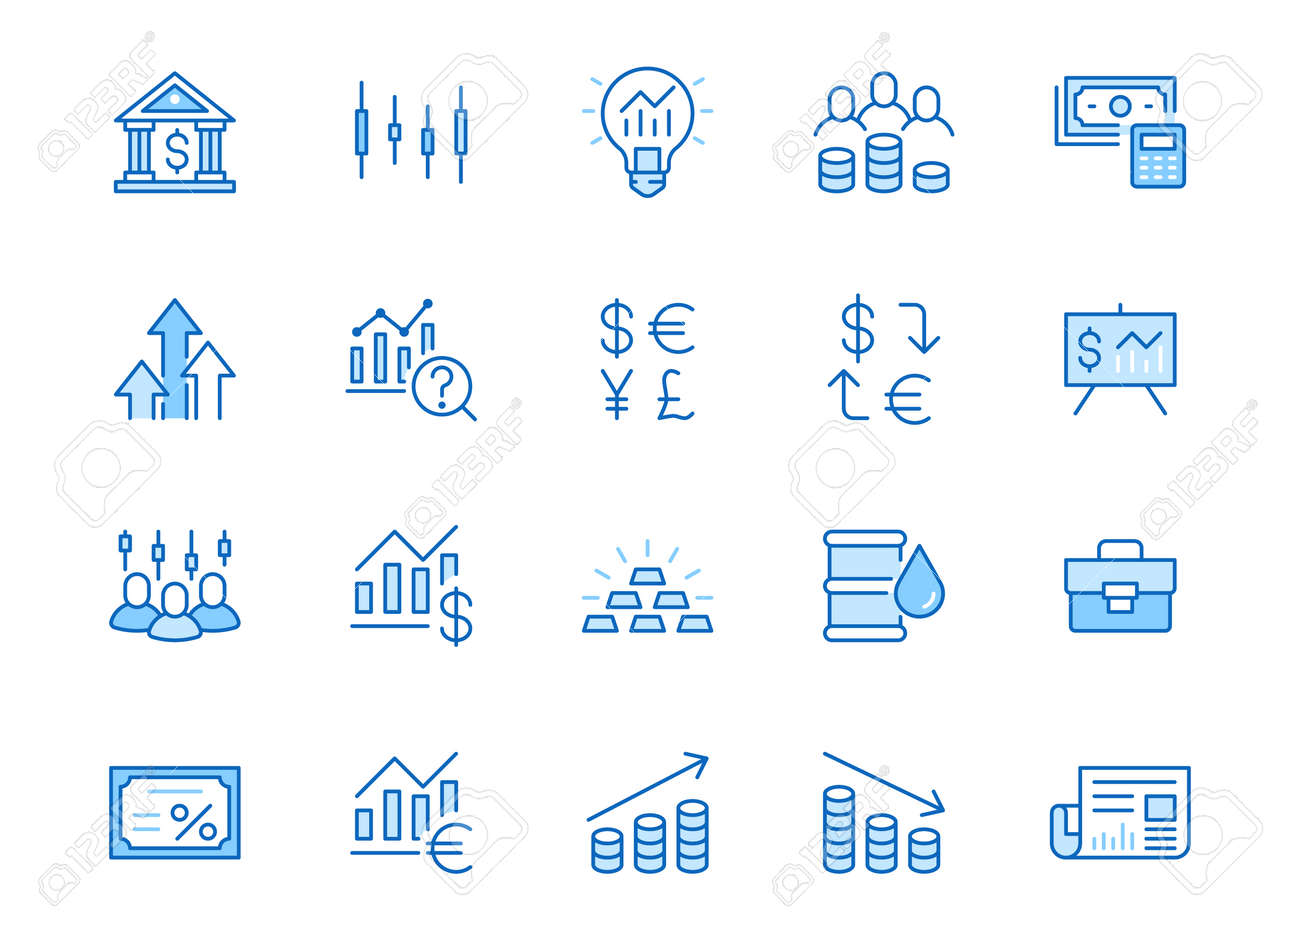 Investment line icon set. Stock market, bond, financial analysis, broker, income increase minimal vector illustration. Simple outline signs investor application. Blue color, Editable Stroke. - 160242635